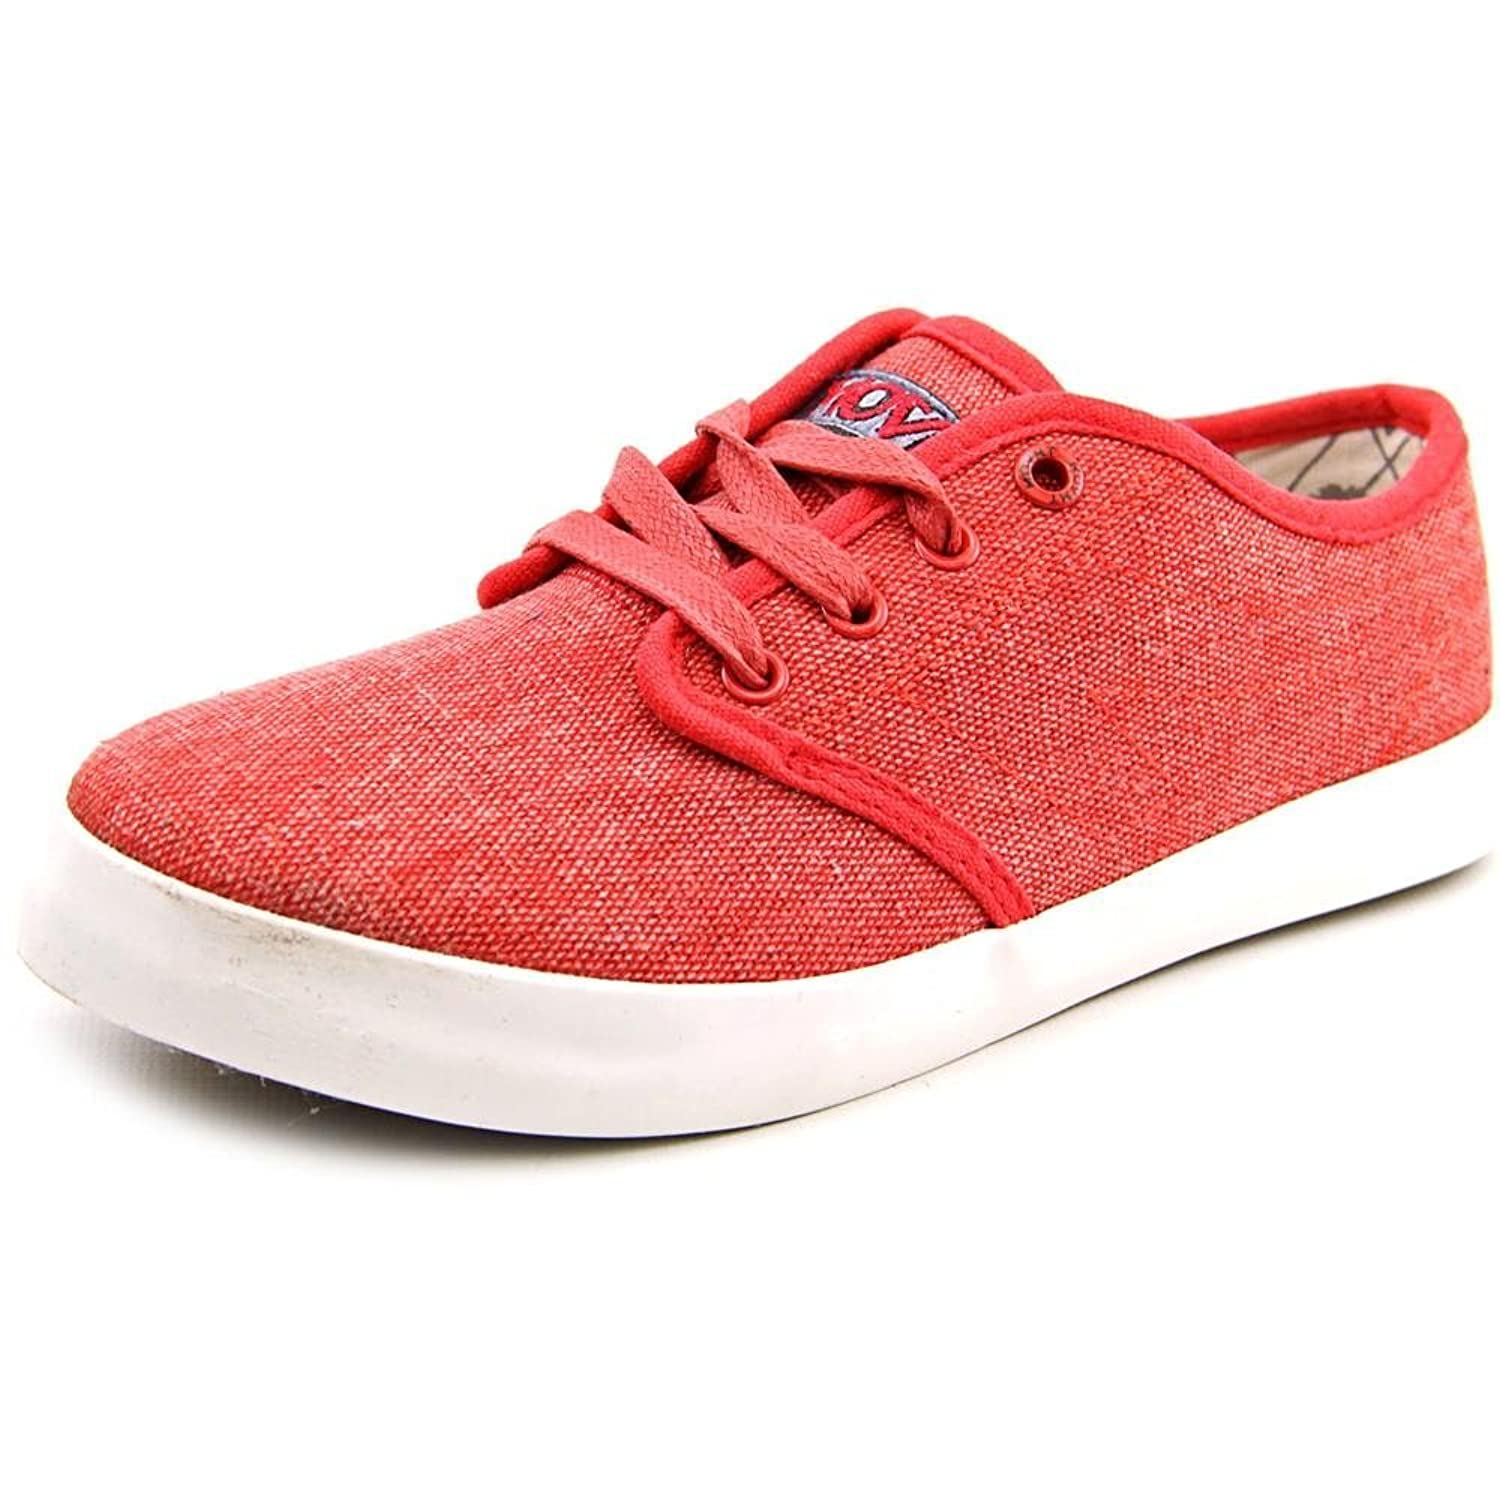 Movmt Marcos Women Red Sneakers